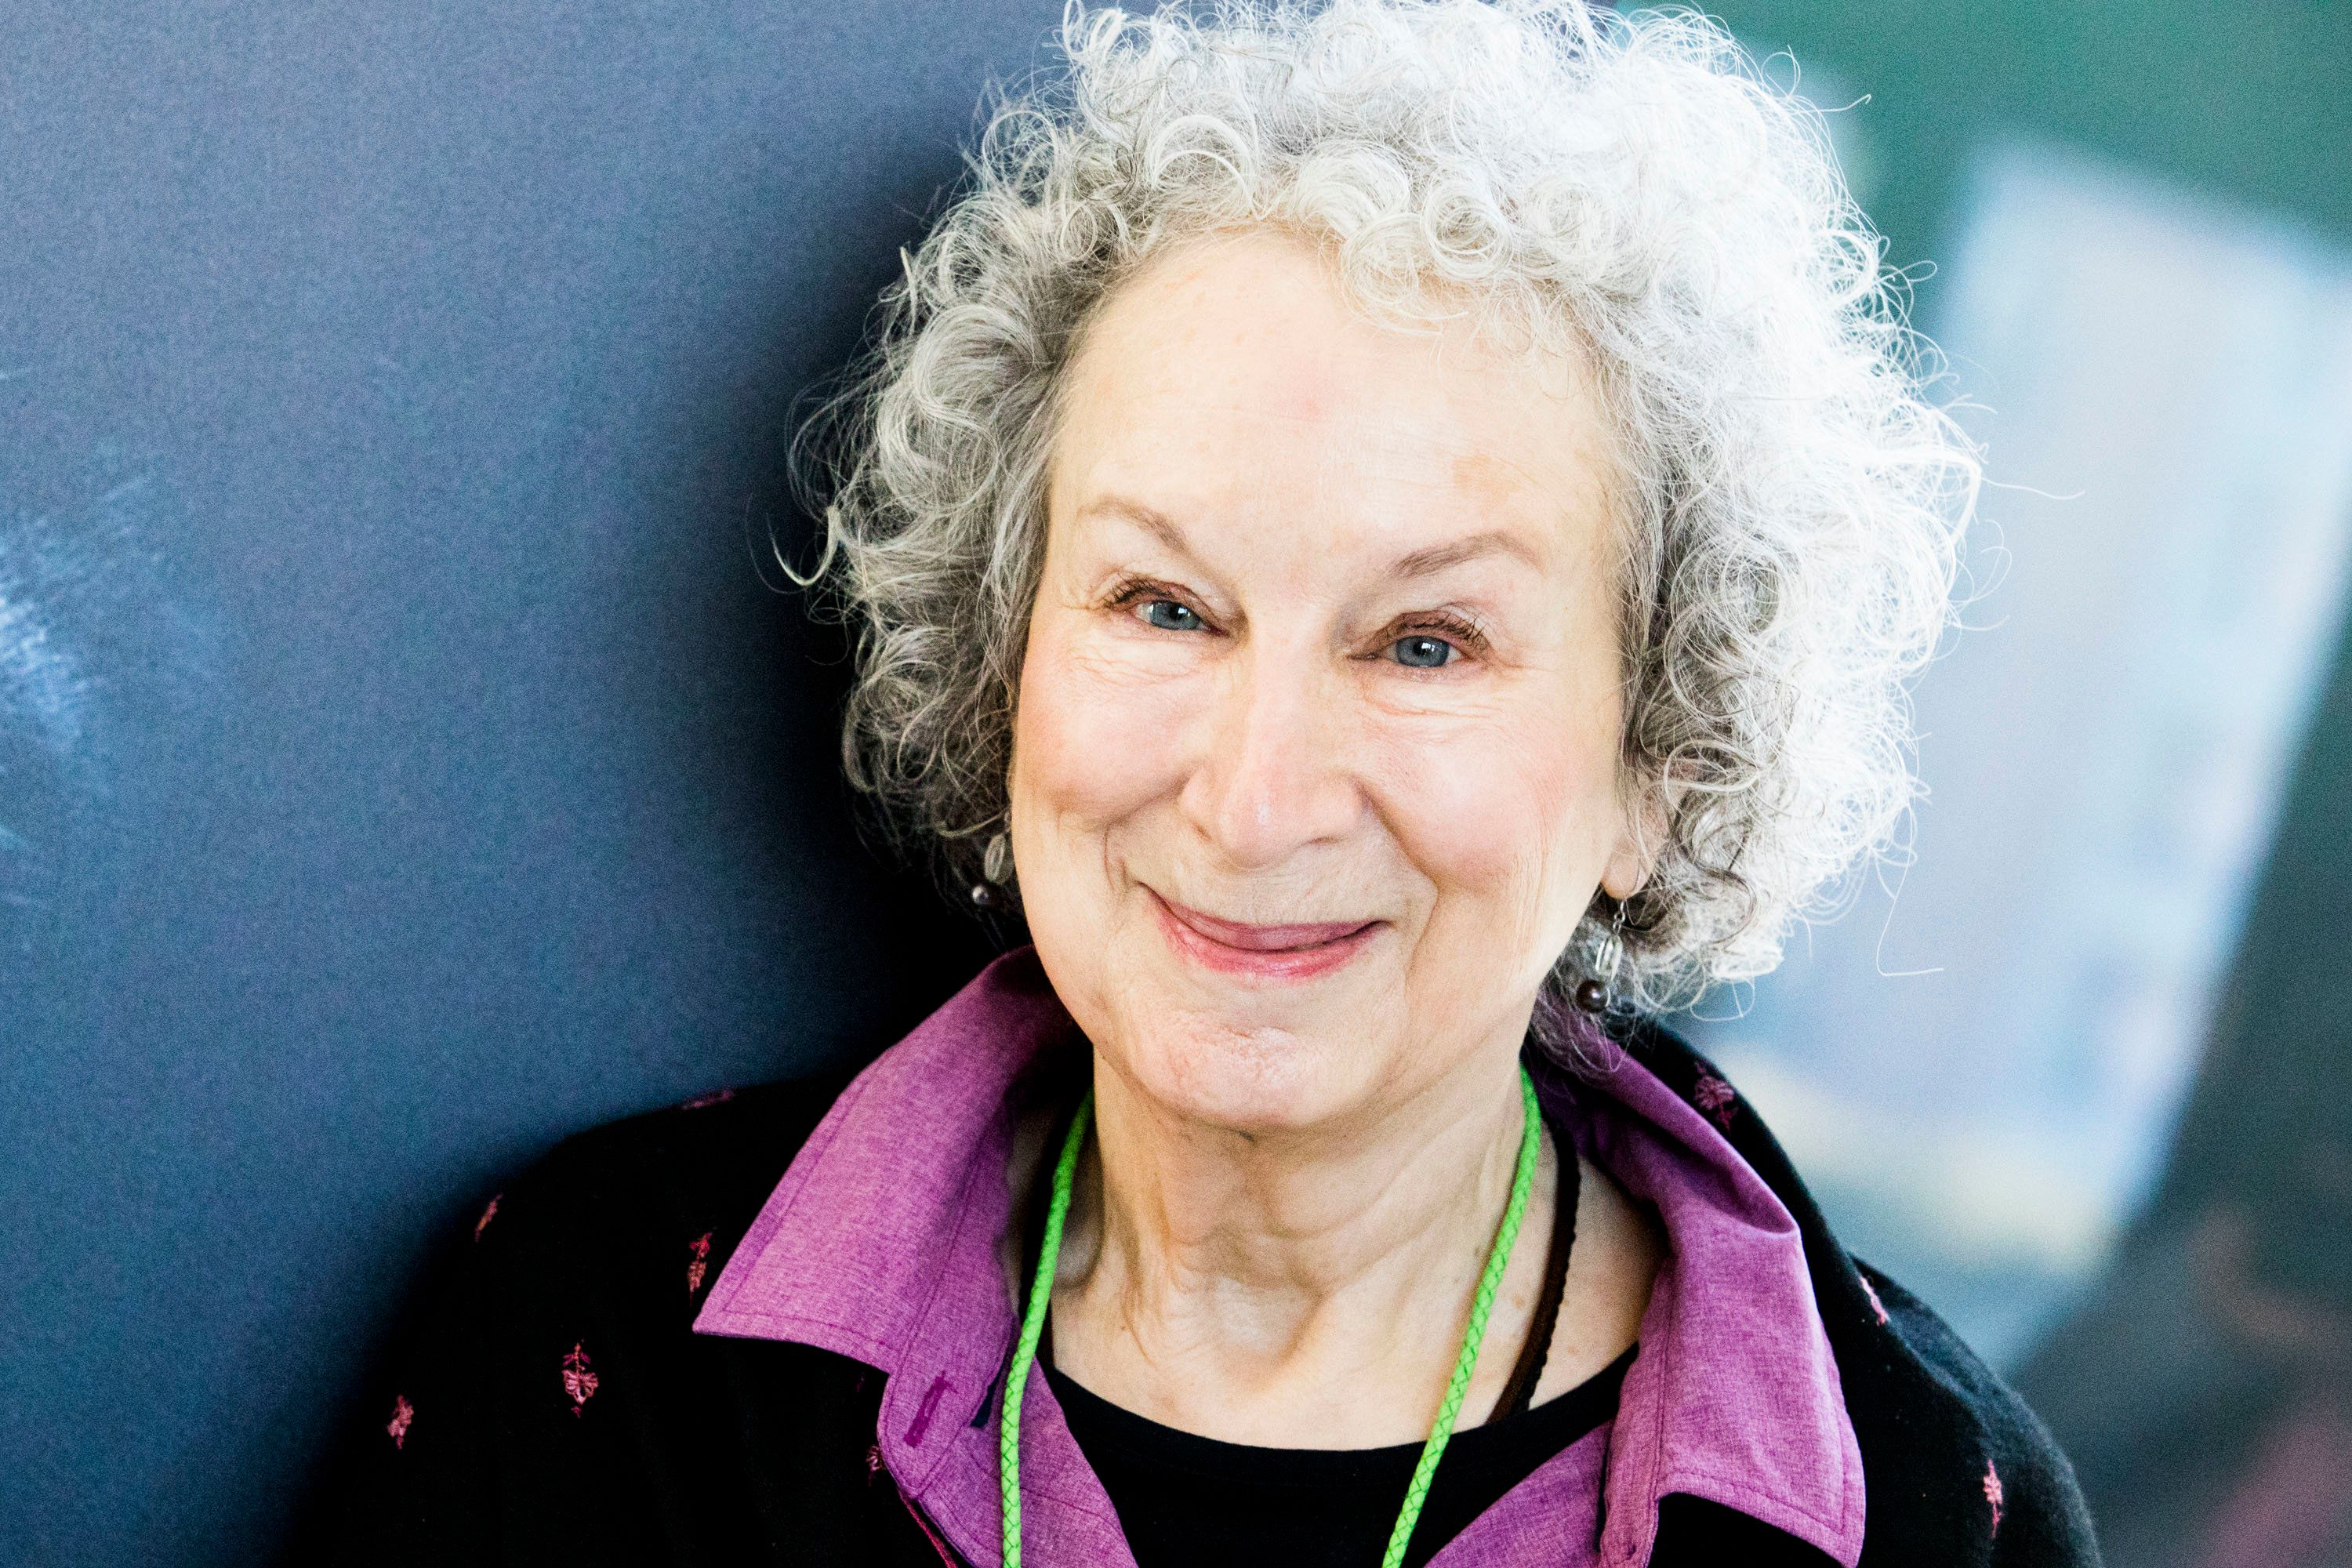 Margaret Atwood Writing 'Handmaid's Tale' Sequel